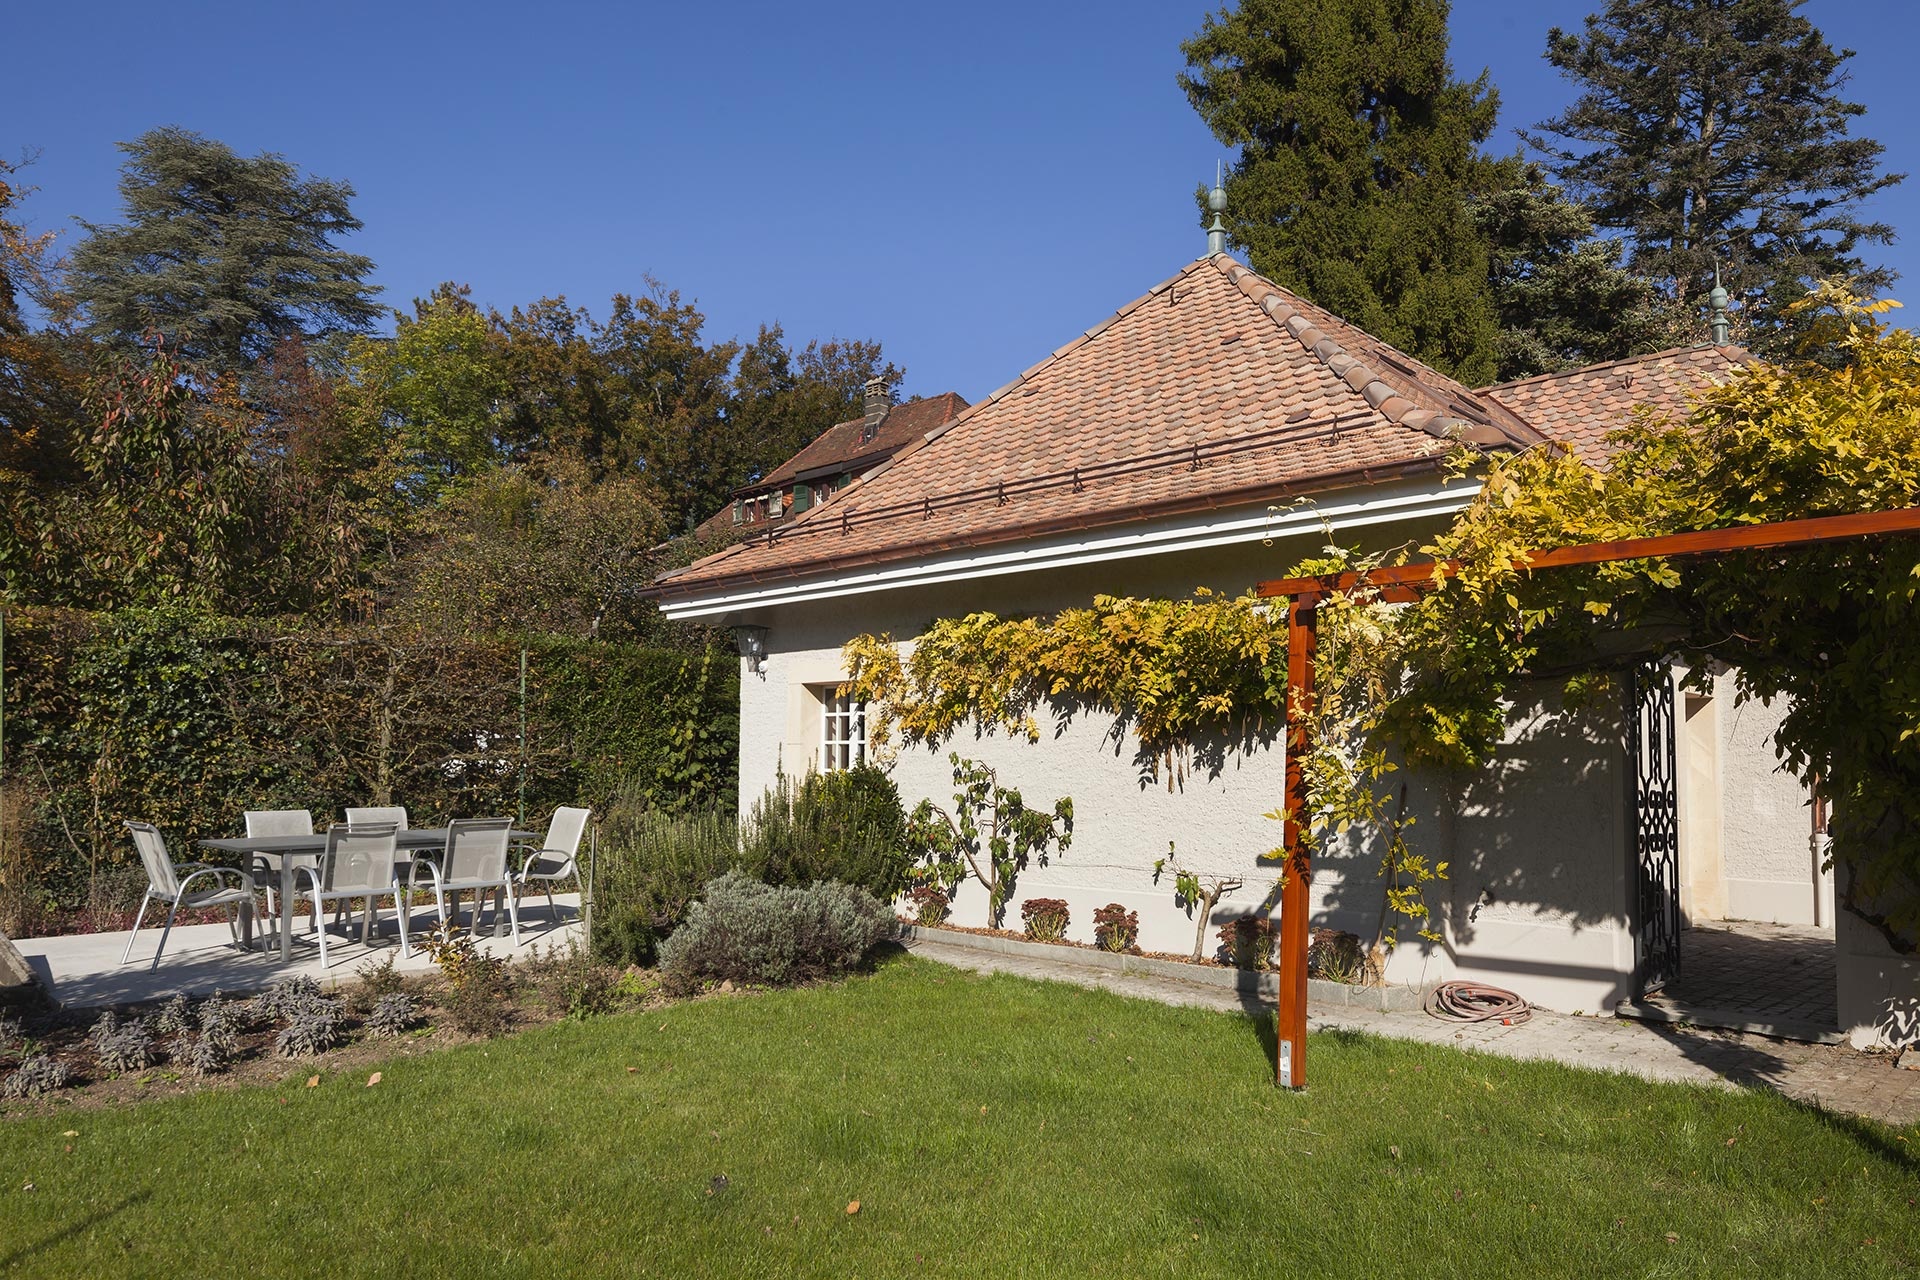 Maison d 39 h te gen ve en suisse dans le quartier du mervelet for Bed and breakfast le bic